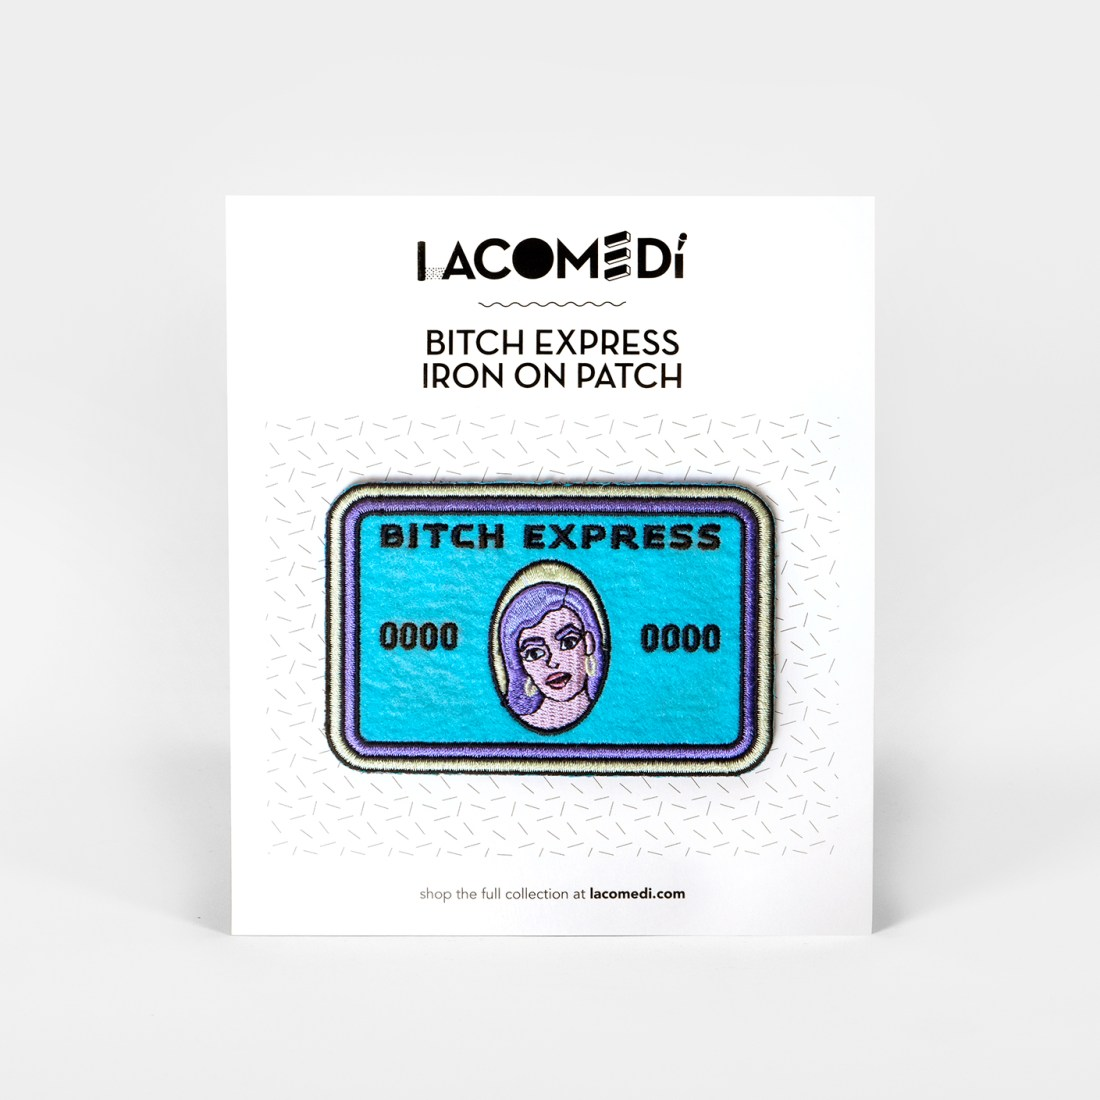 Bitch Express Patch by La Come Di